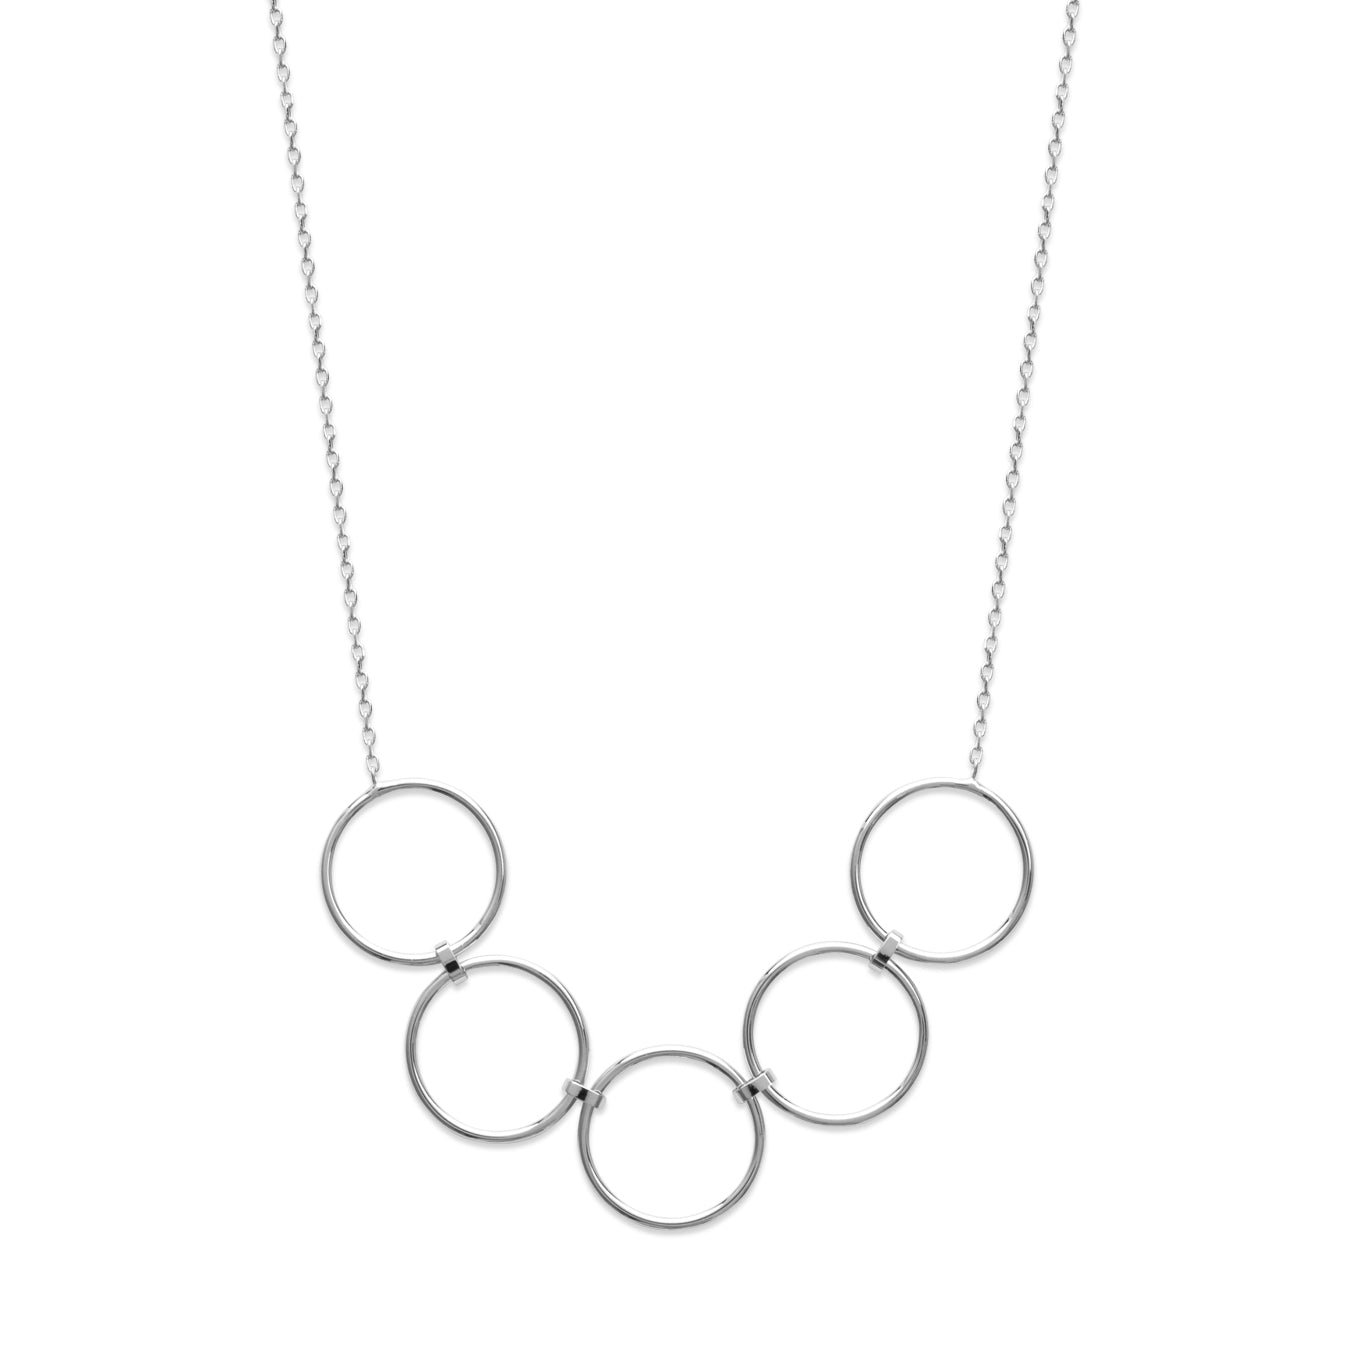 Silver Linked Spheres Necklace